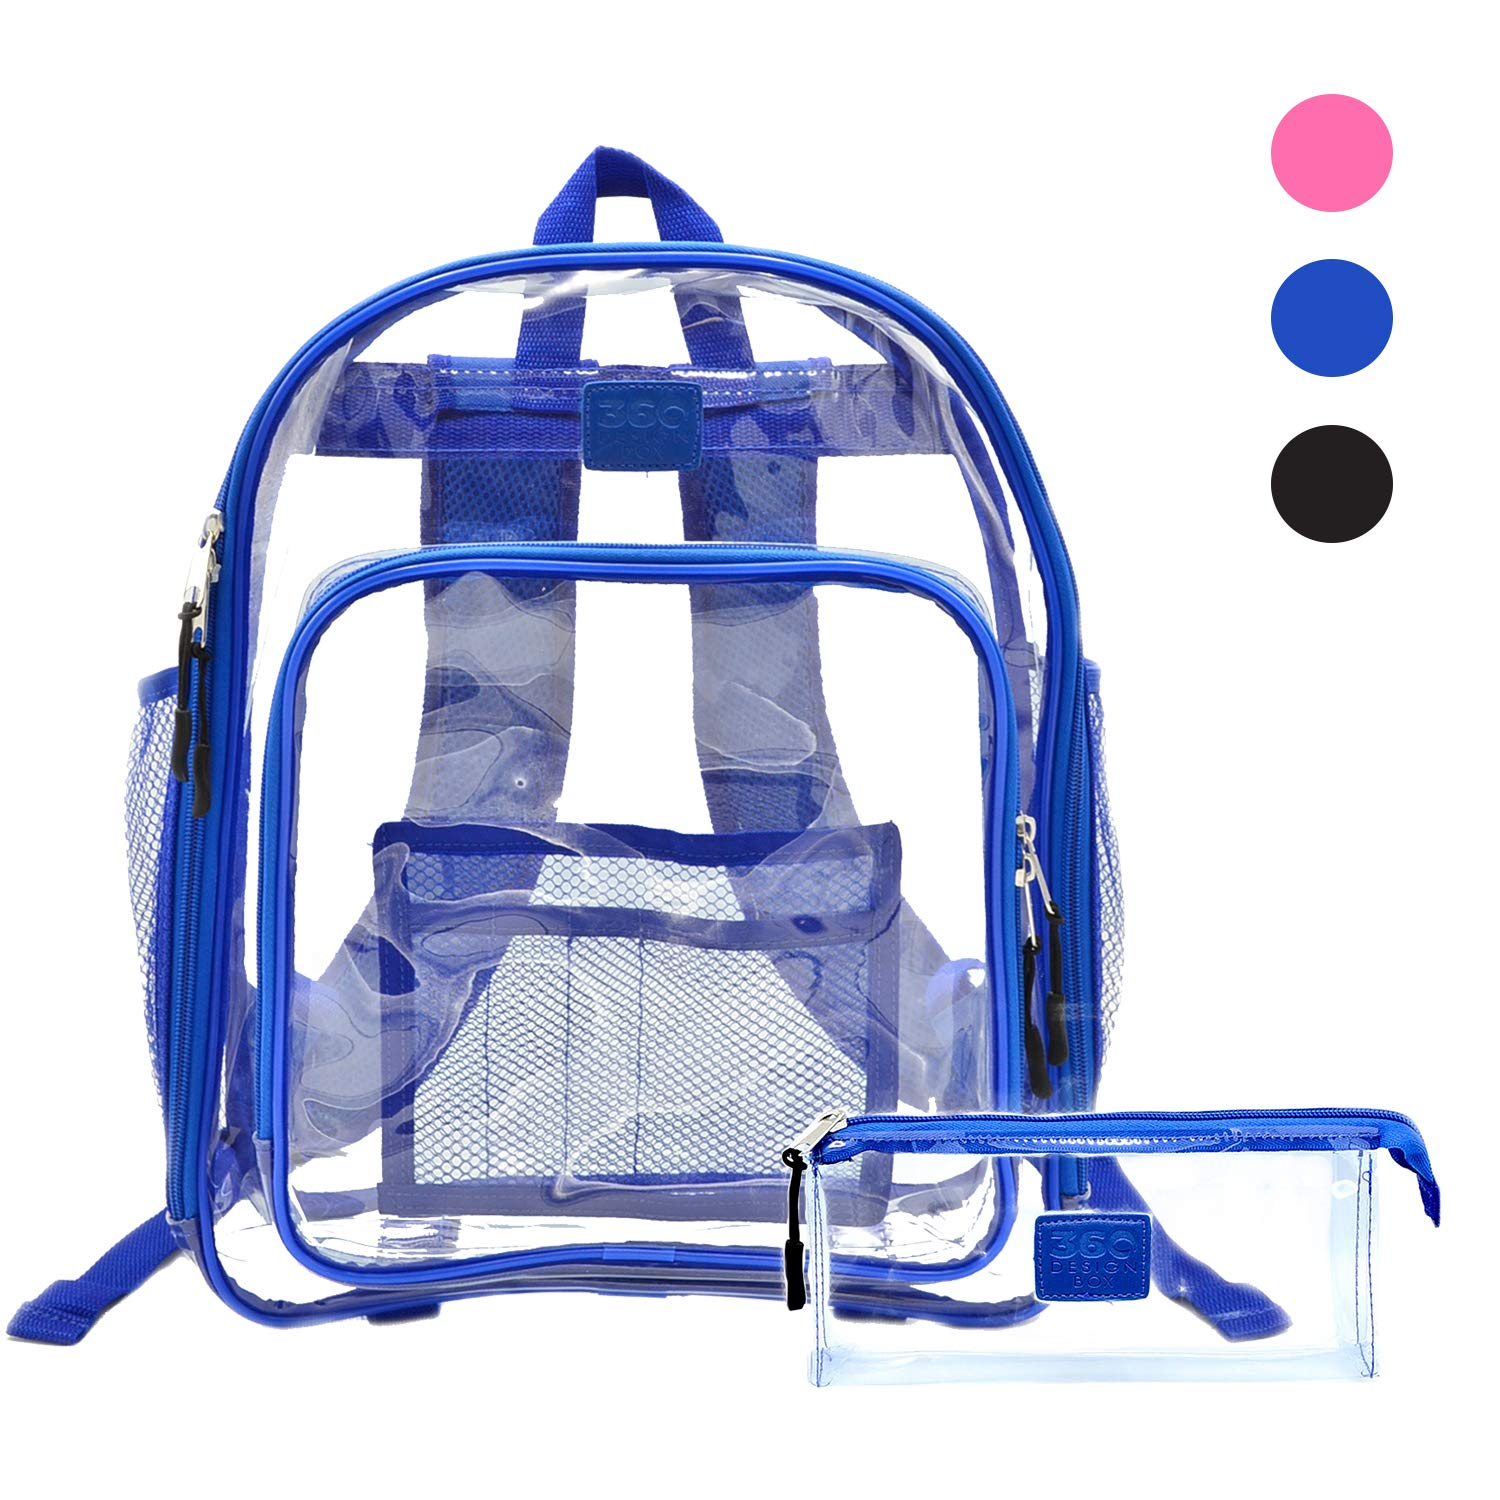 Clear School Security Backpack, Unisex Transparent Travel Work Bag, Pencil Case Included, Mesh Pockets for Water Bottles and Adjustable Padded Straps, See Through Bookbag Blue